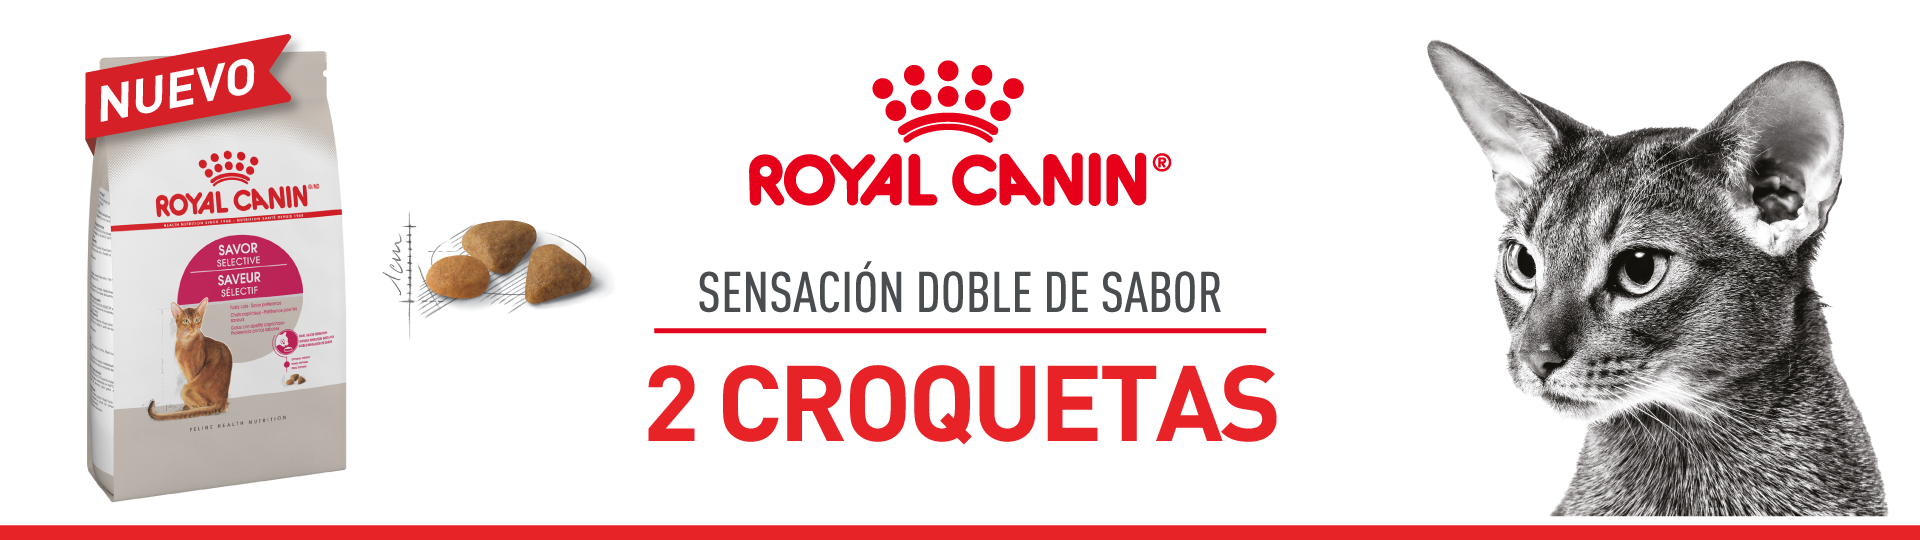 Royal Canin 2 croquetas